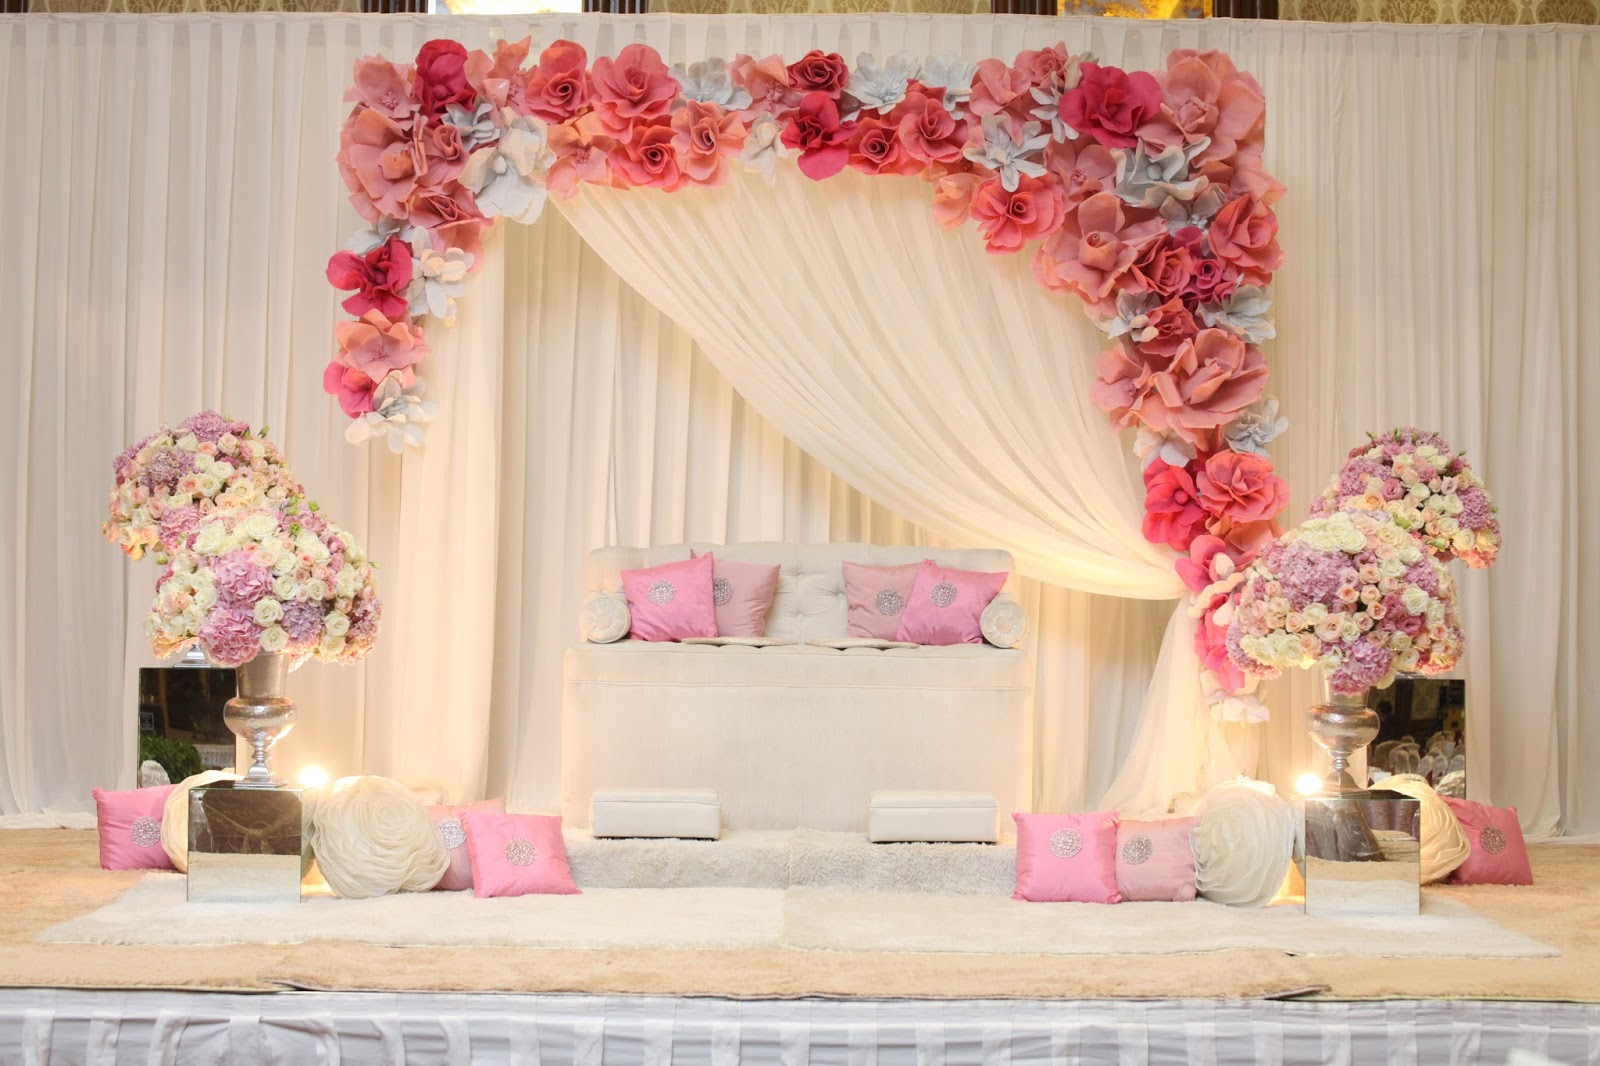 Weddings By Sher Wedding At Grand Dorsett Subang Jaya